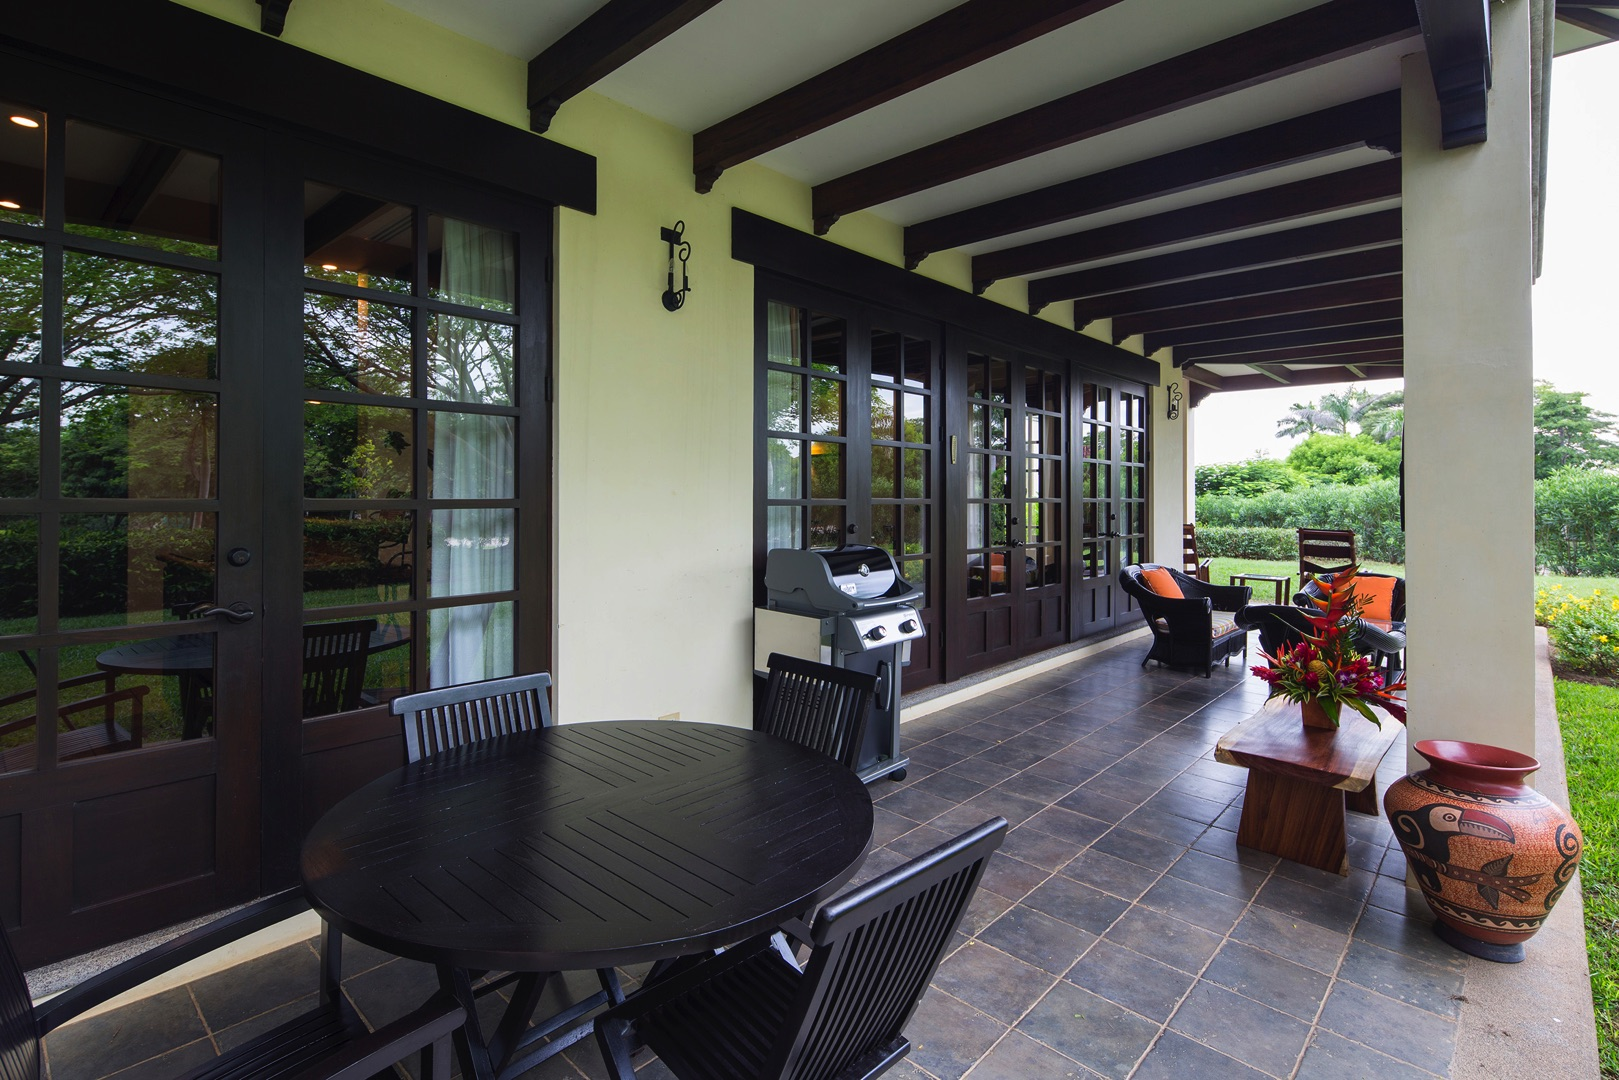 Patio with BBQ and outside sitting